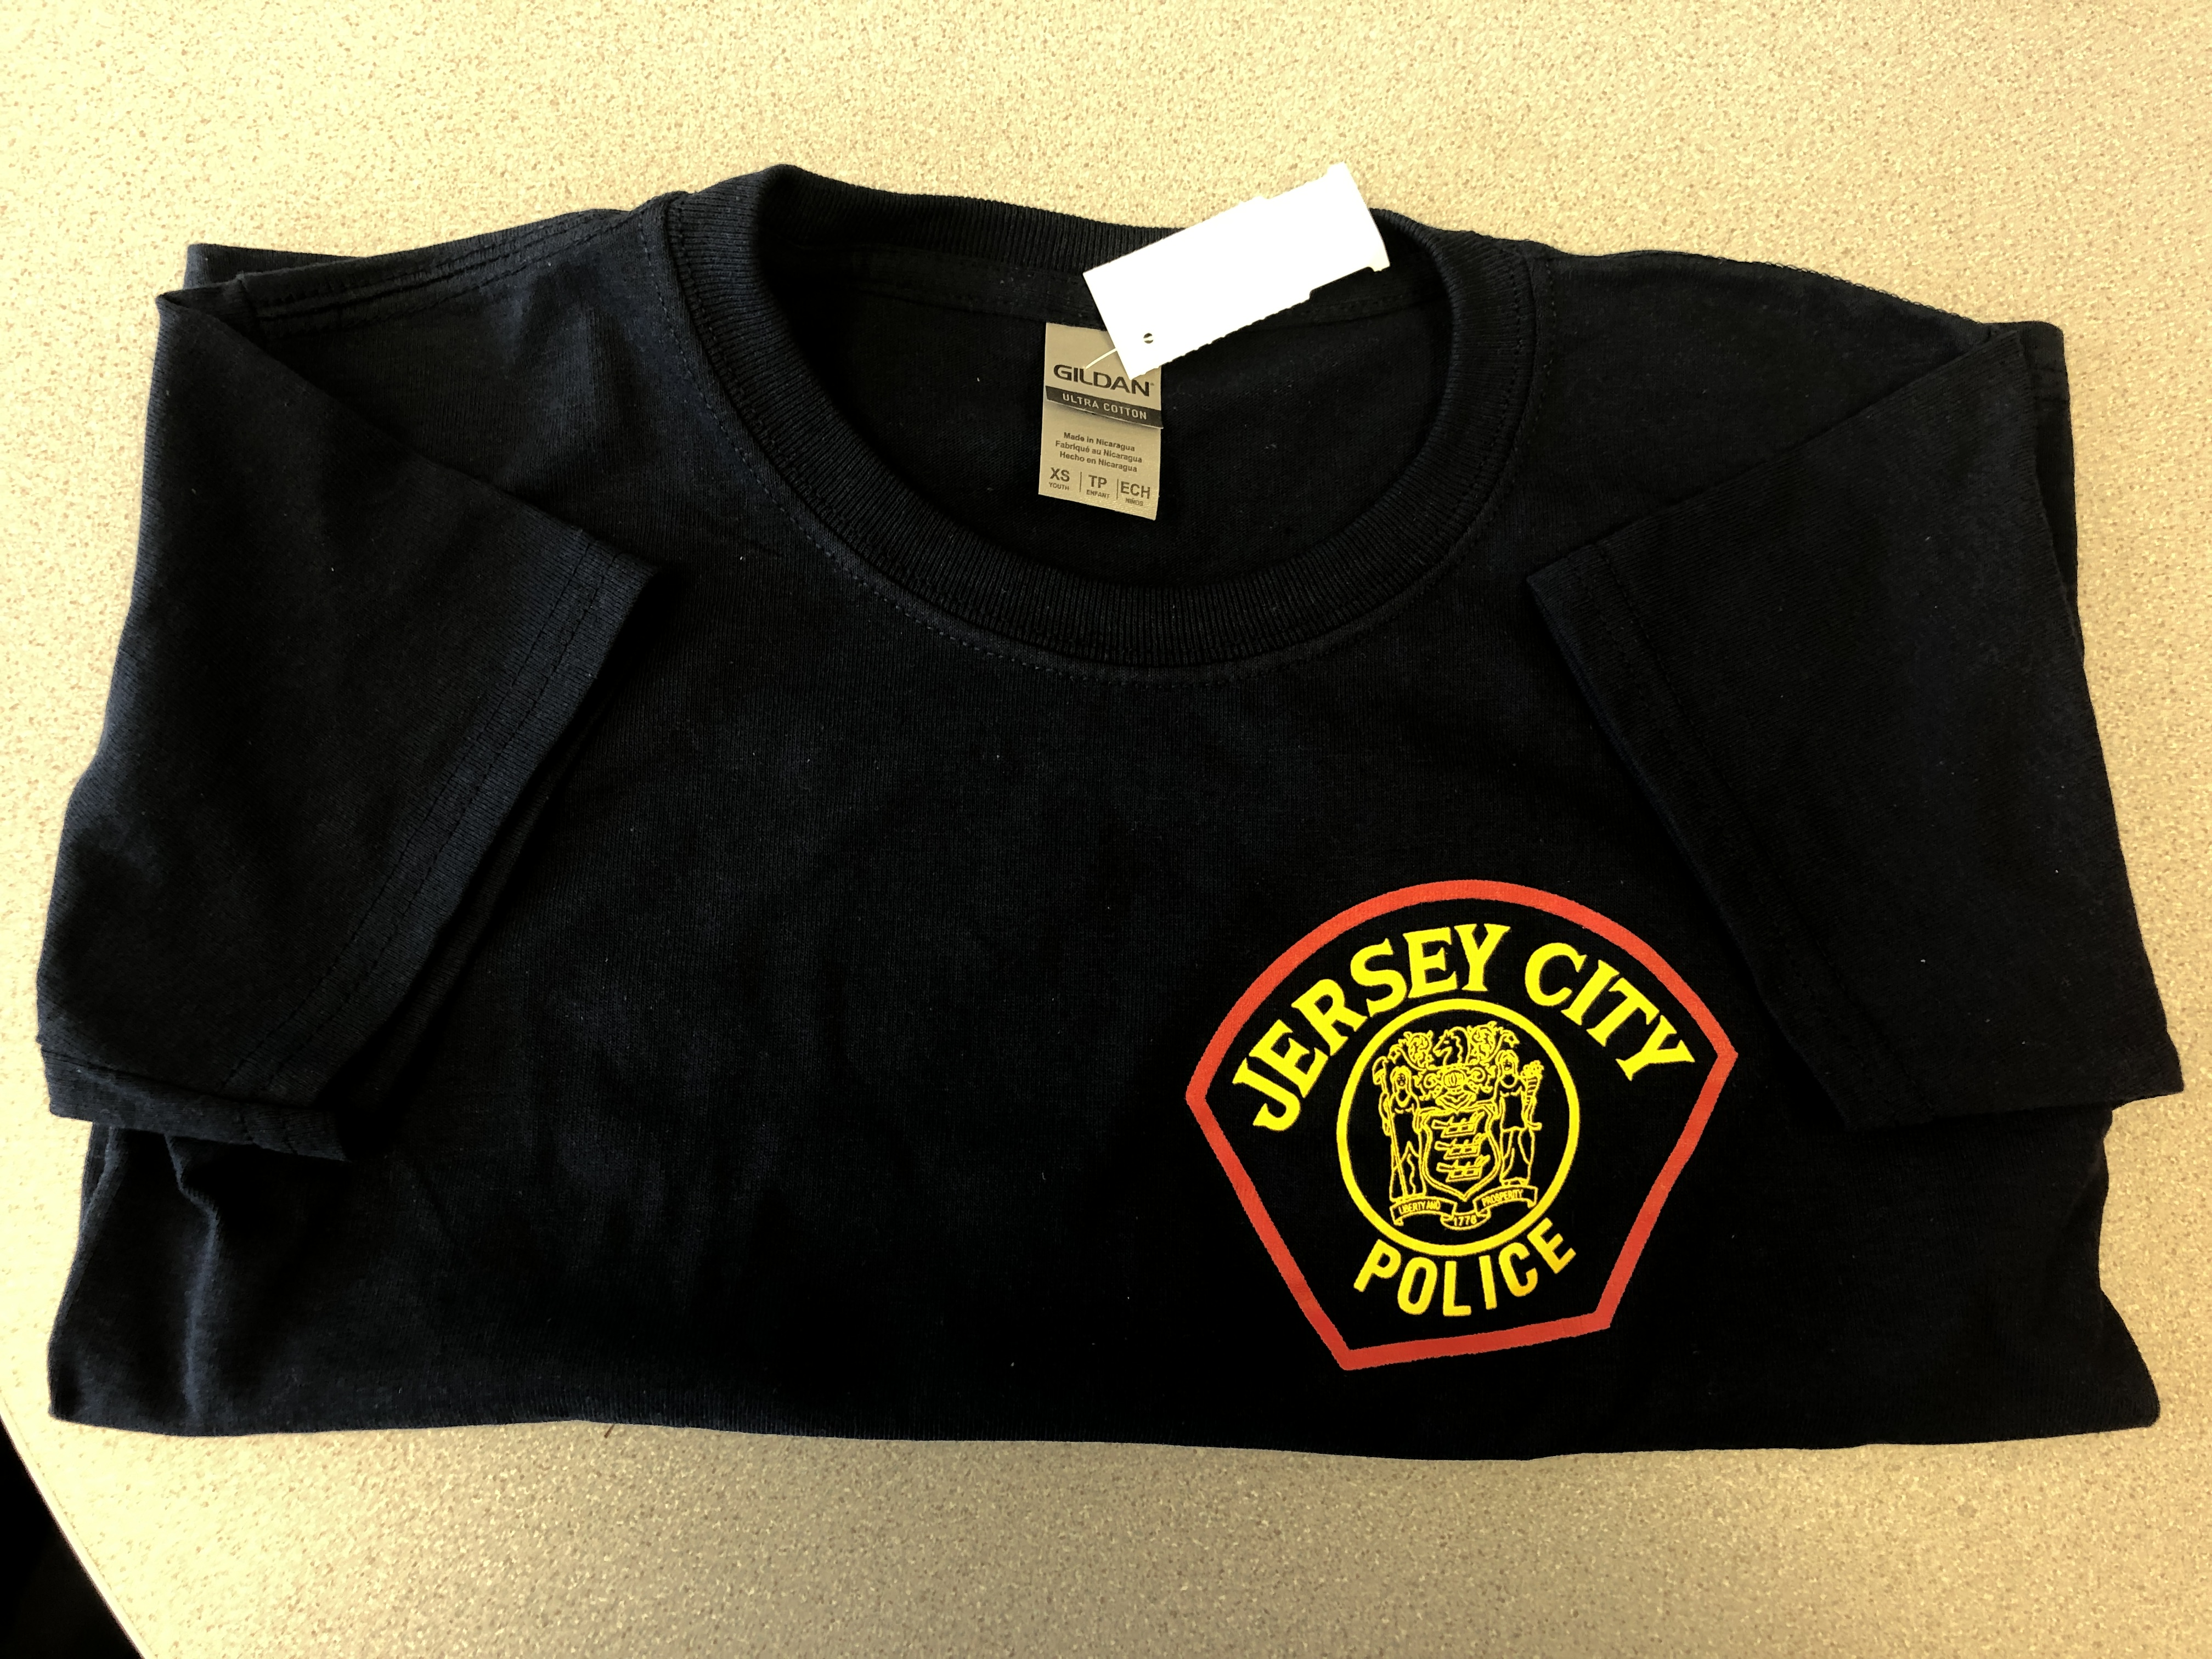 JERSEY CITY POLICE T-SHIRT-